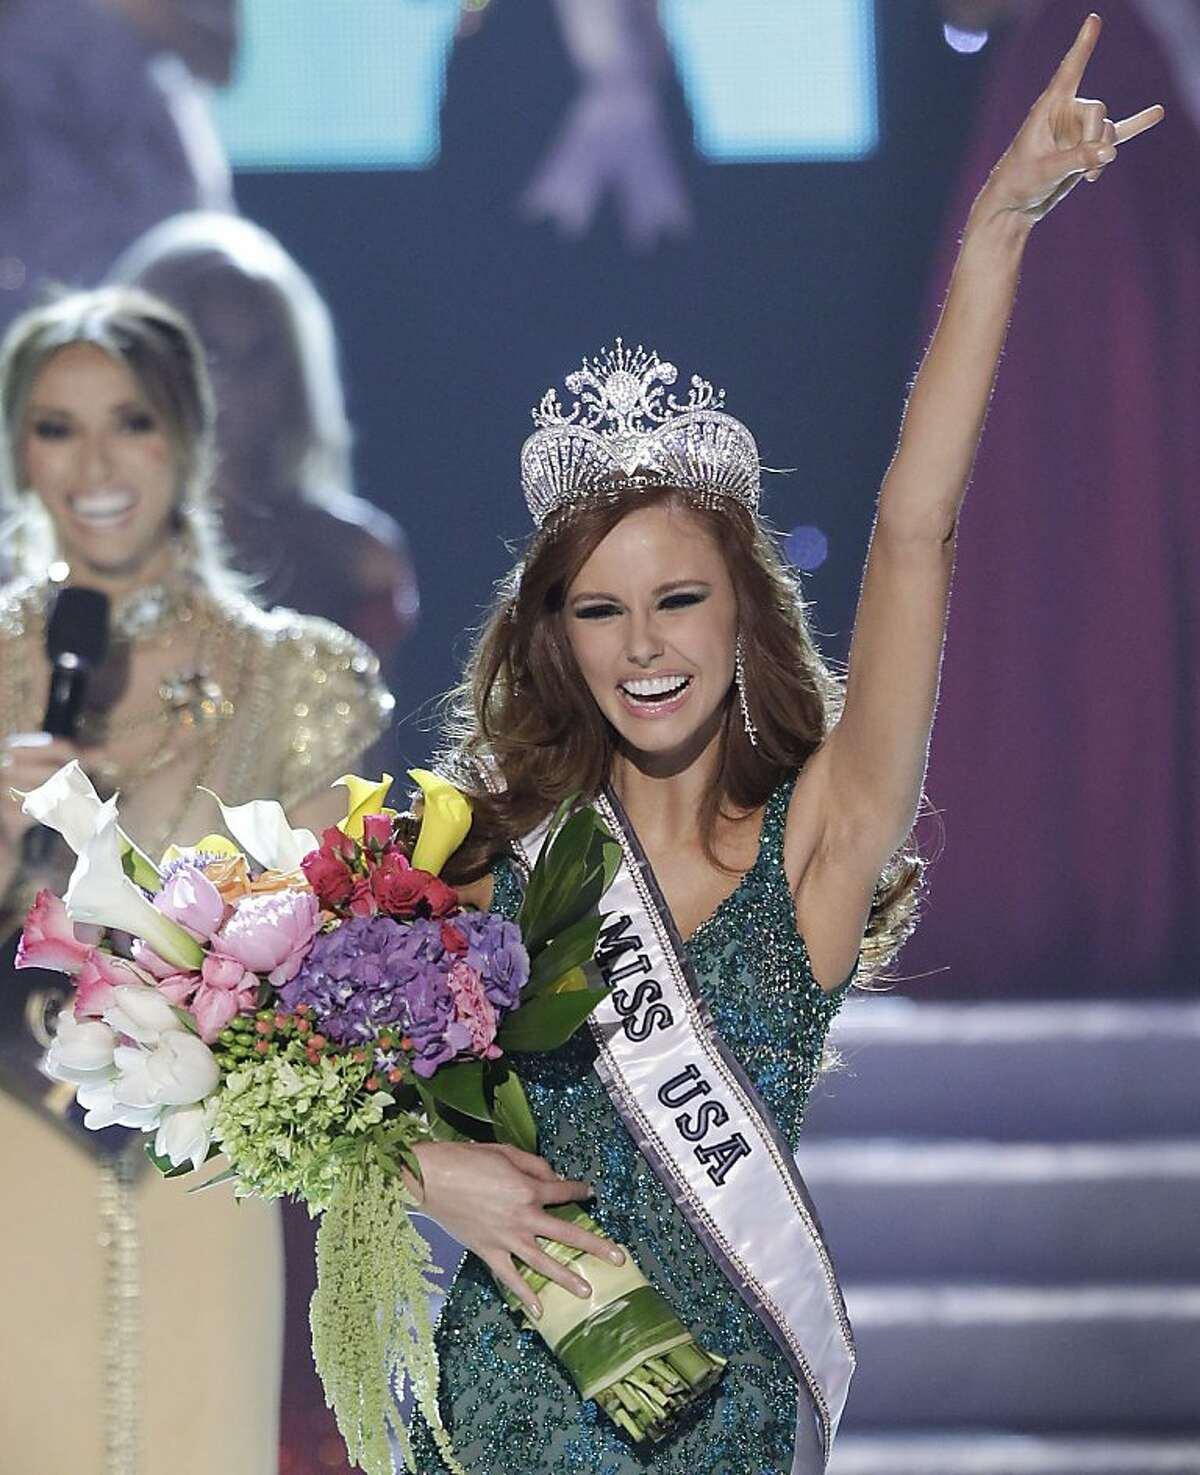 Alyssa Campanella, Miss California, reacts after being crowned the 2011 Miss USA, Sunday, June 19, 2011, in Las Vegas.